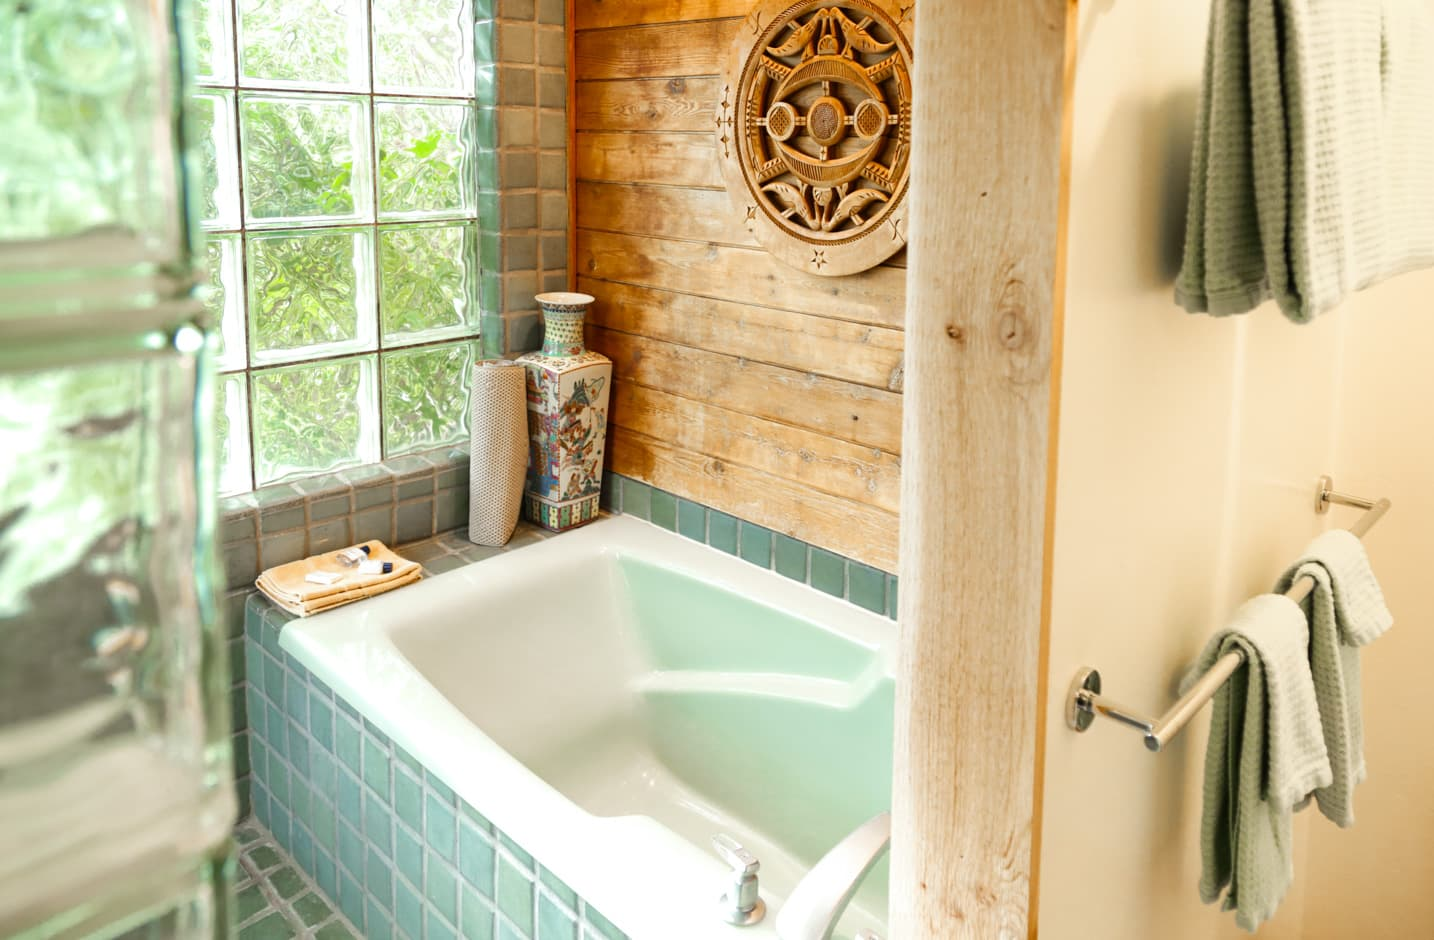 Large tub in a garden room with wooden walls and tile floors